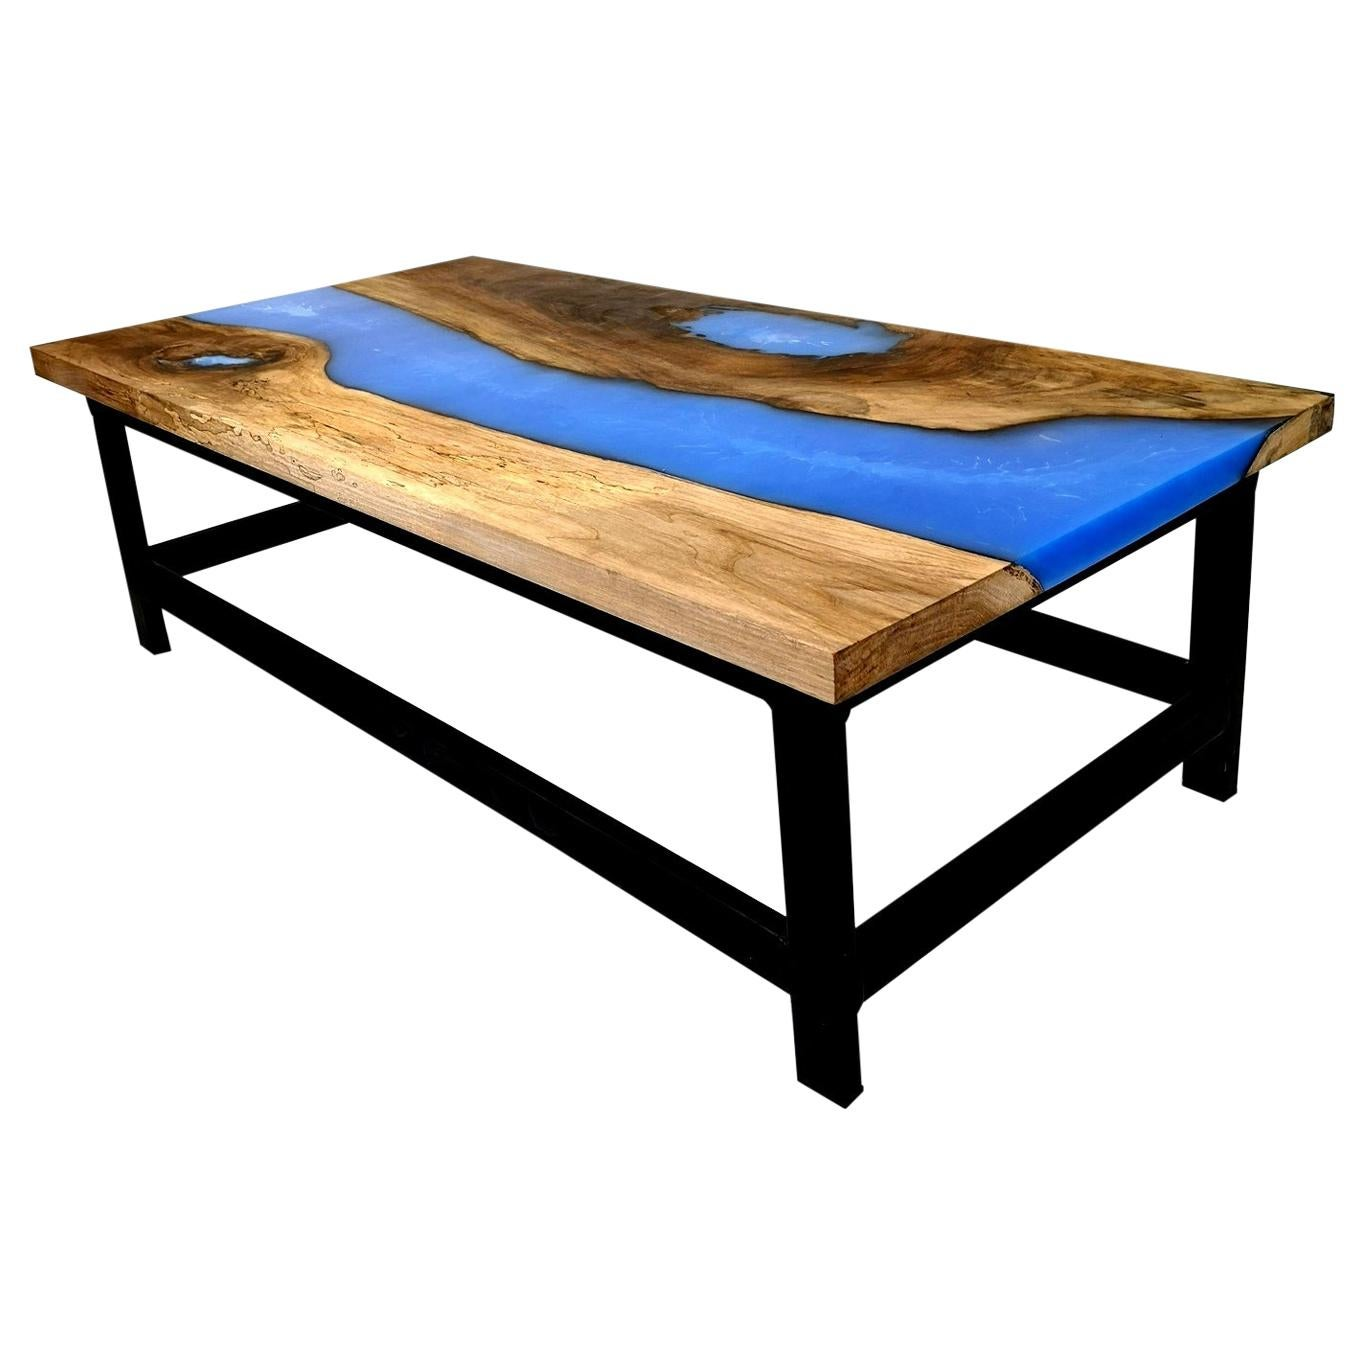 Walnut Coffee Table with Blue Epoxy Resin and Steel Legs